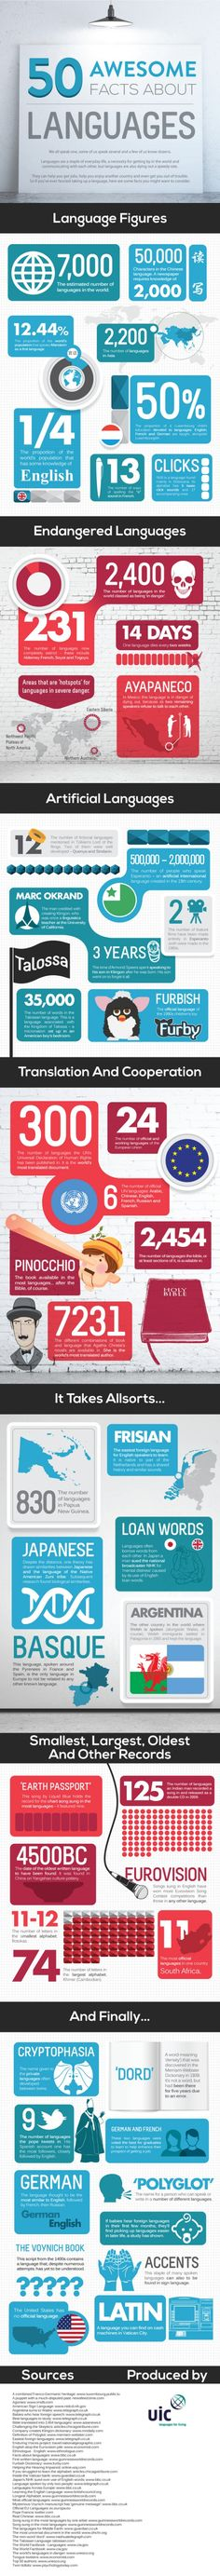 50 Awesome Facts About Languages  Infographic